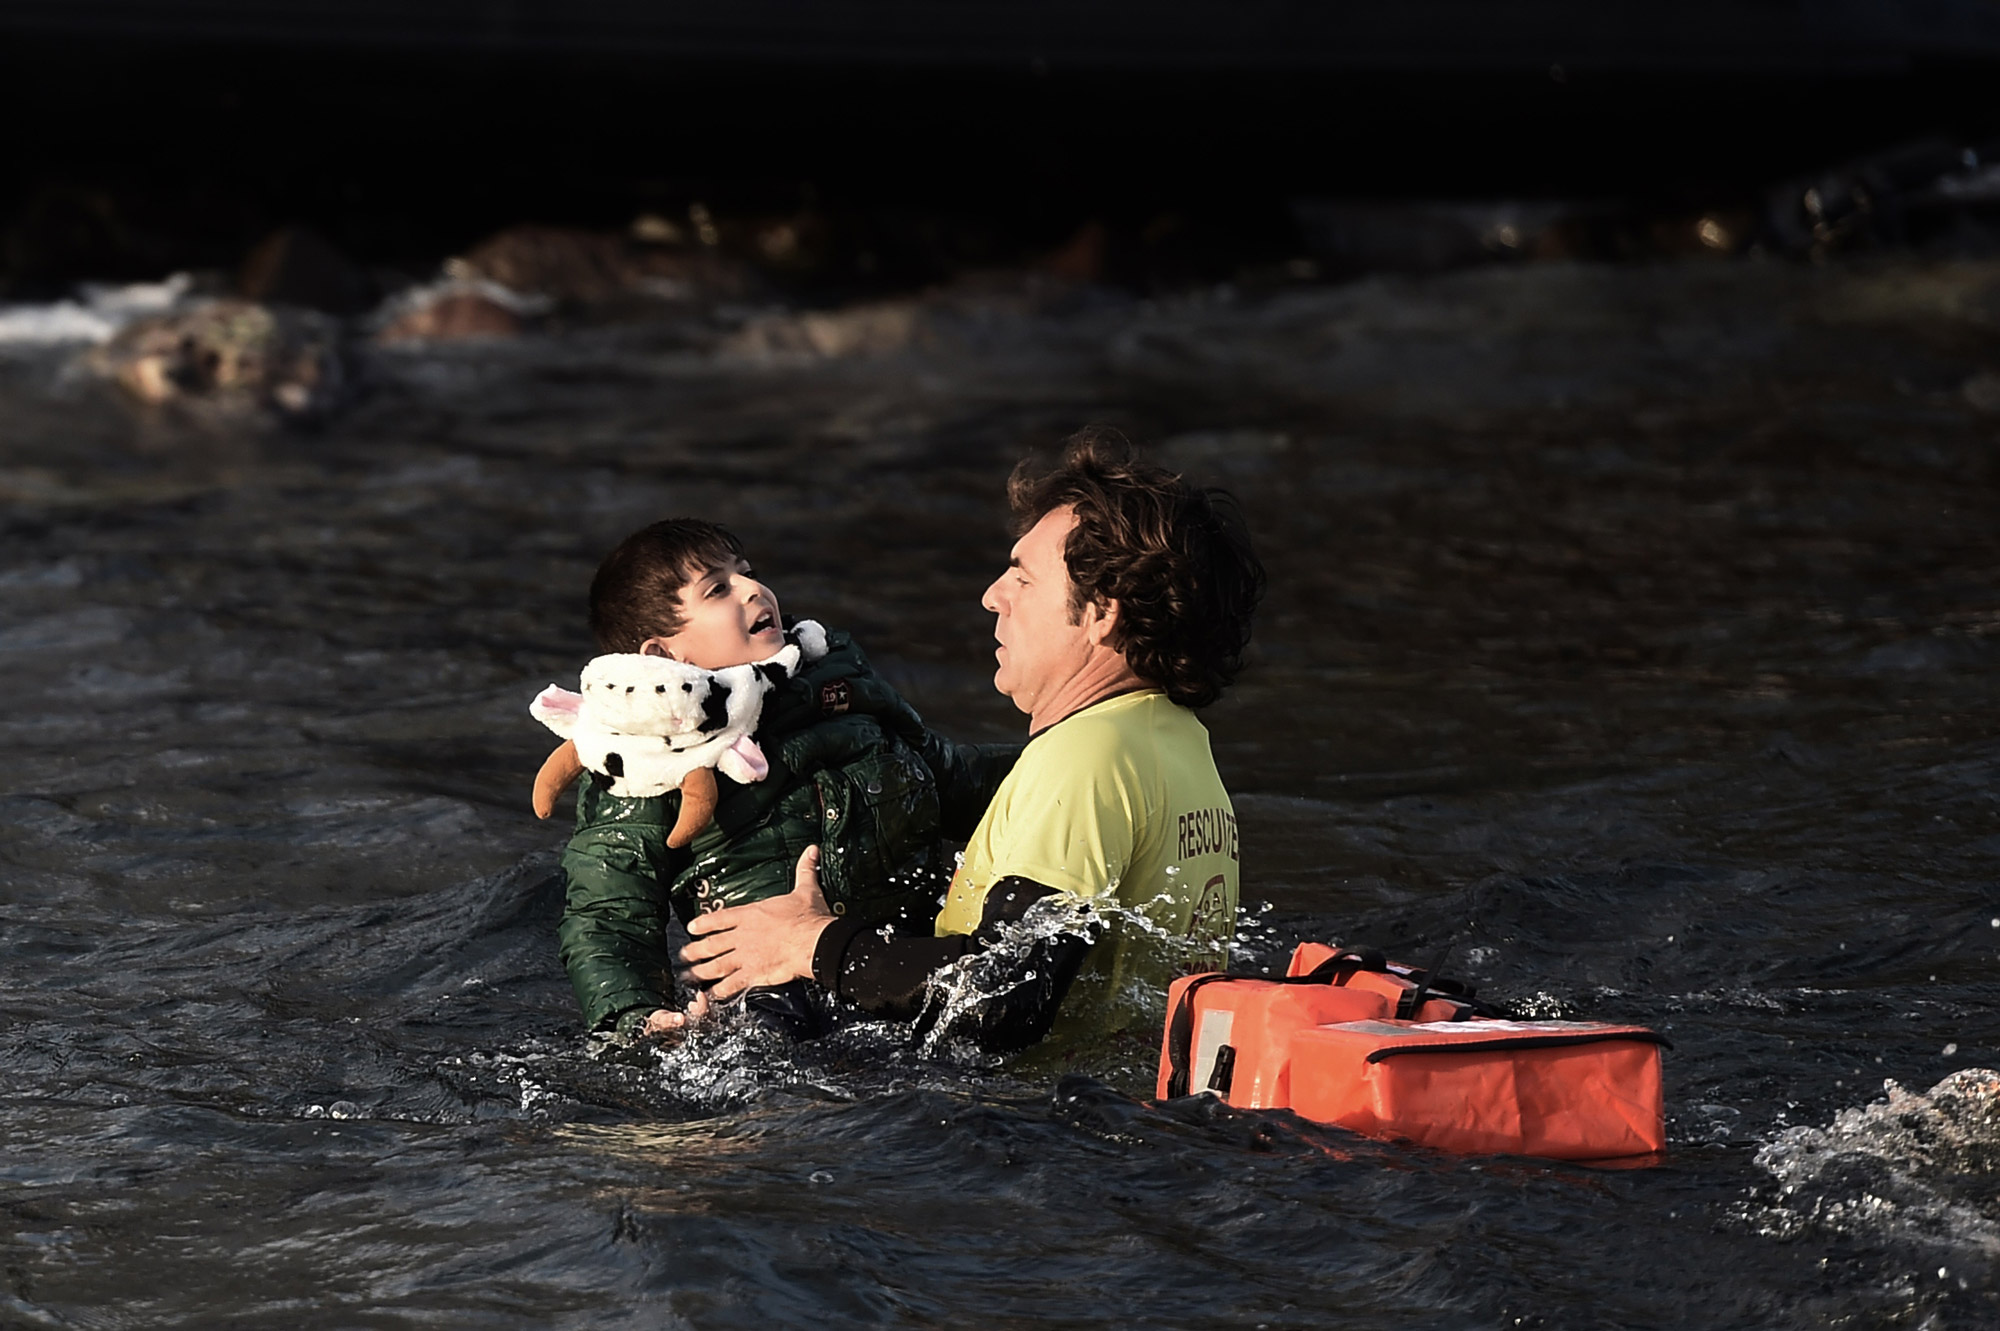 A Spanish lifeguard saves a migrant child as the boat he had boarded with other migrants and refugees sinks off the Greek island of Lesbos on Oct. 30, 2015.